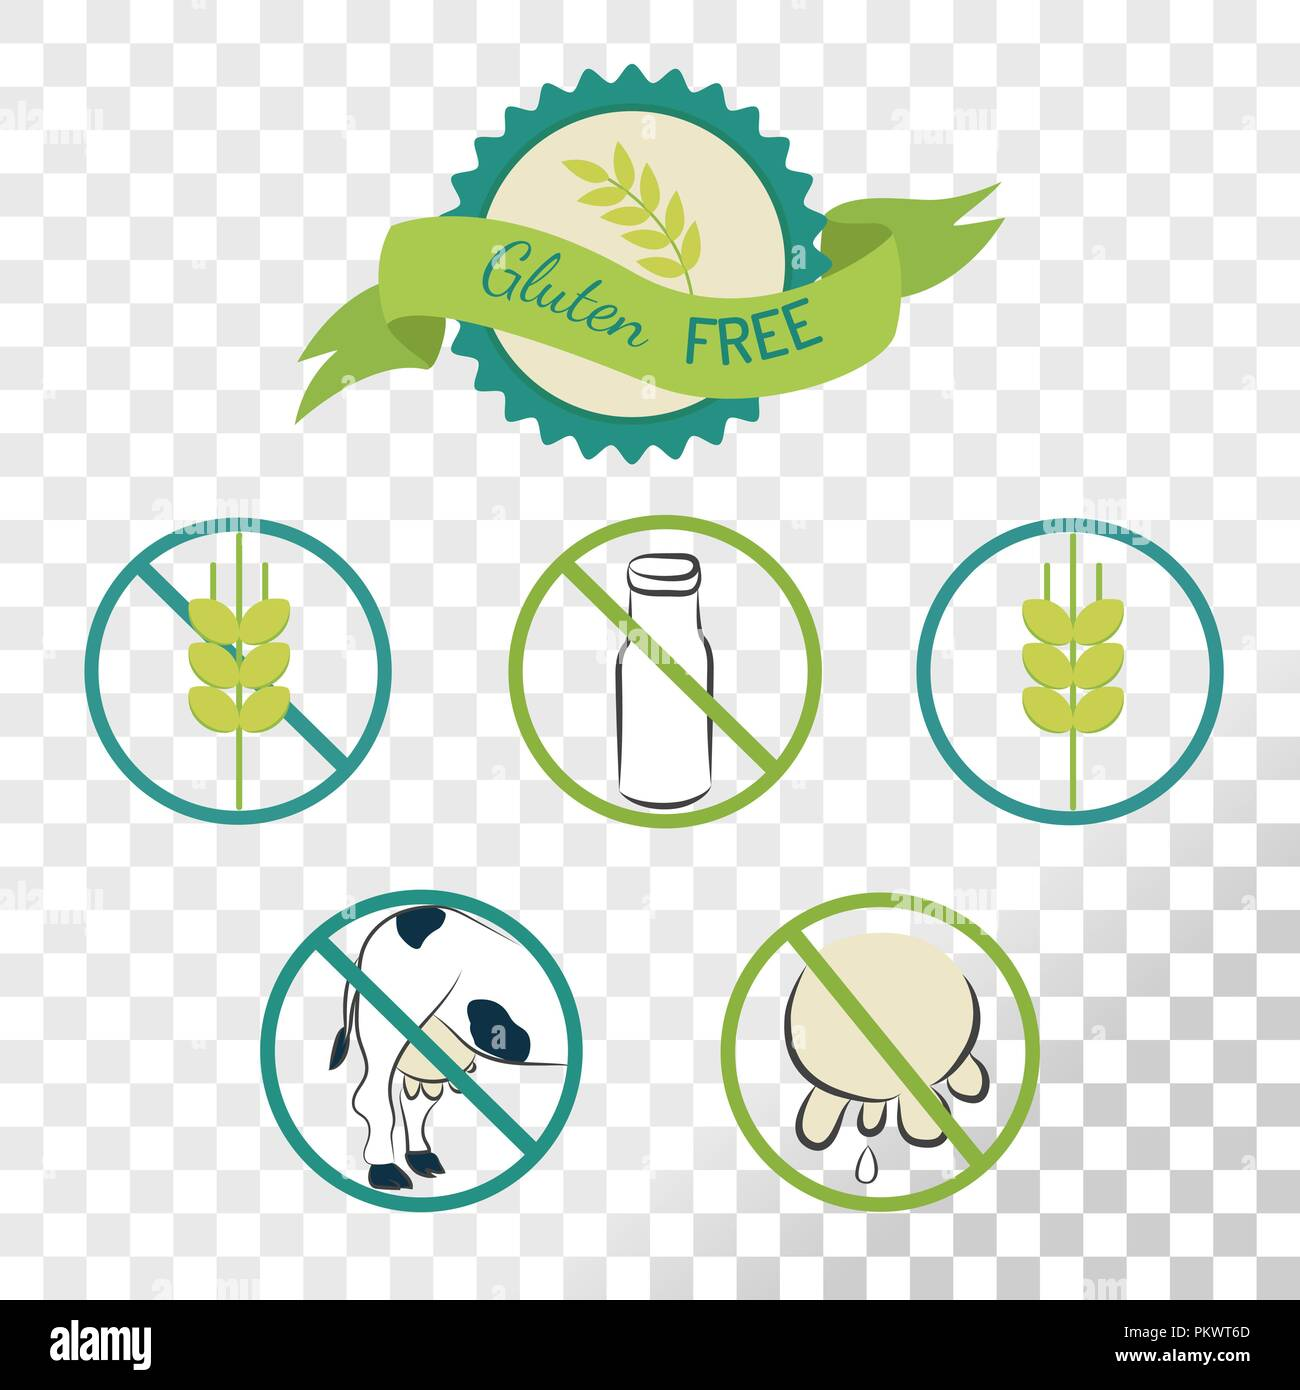 Gluten free labels collection isolated on transparent background. Emblems for caution for people with allergies. Stock Vector